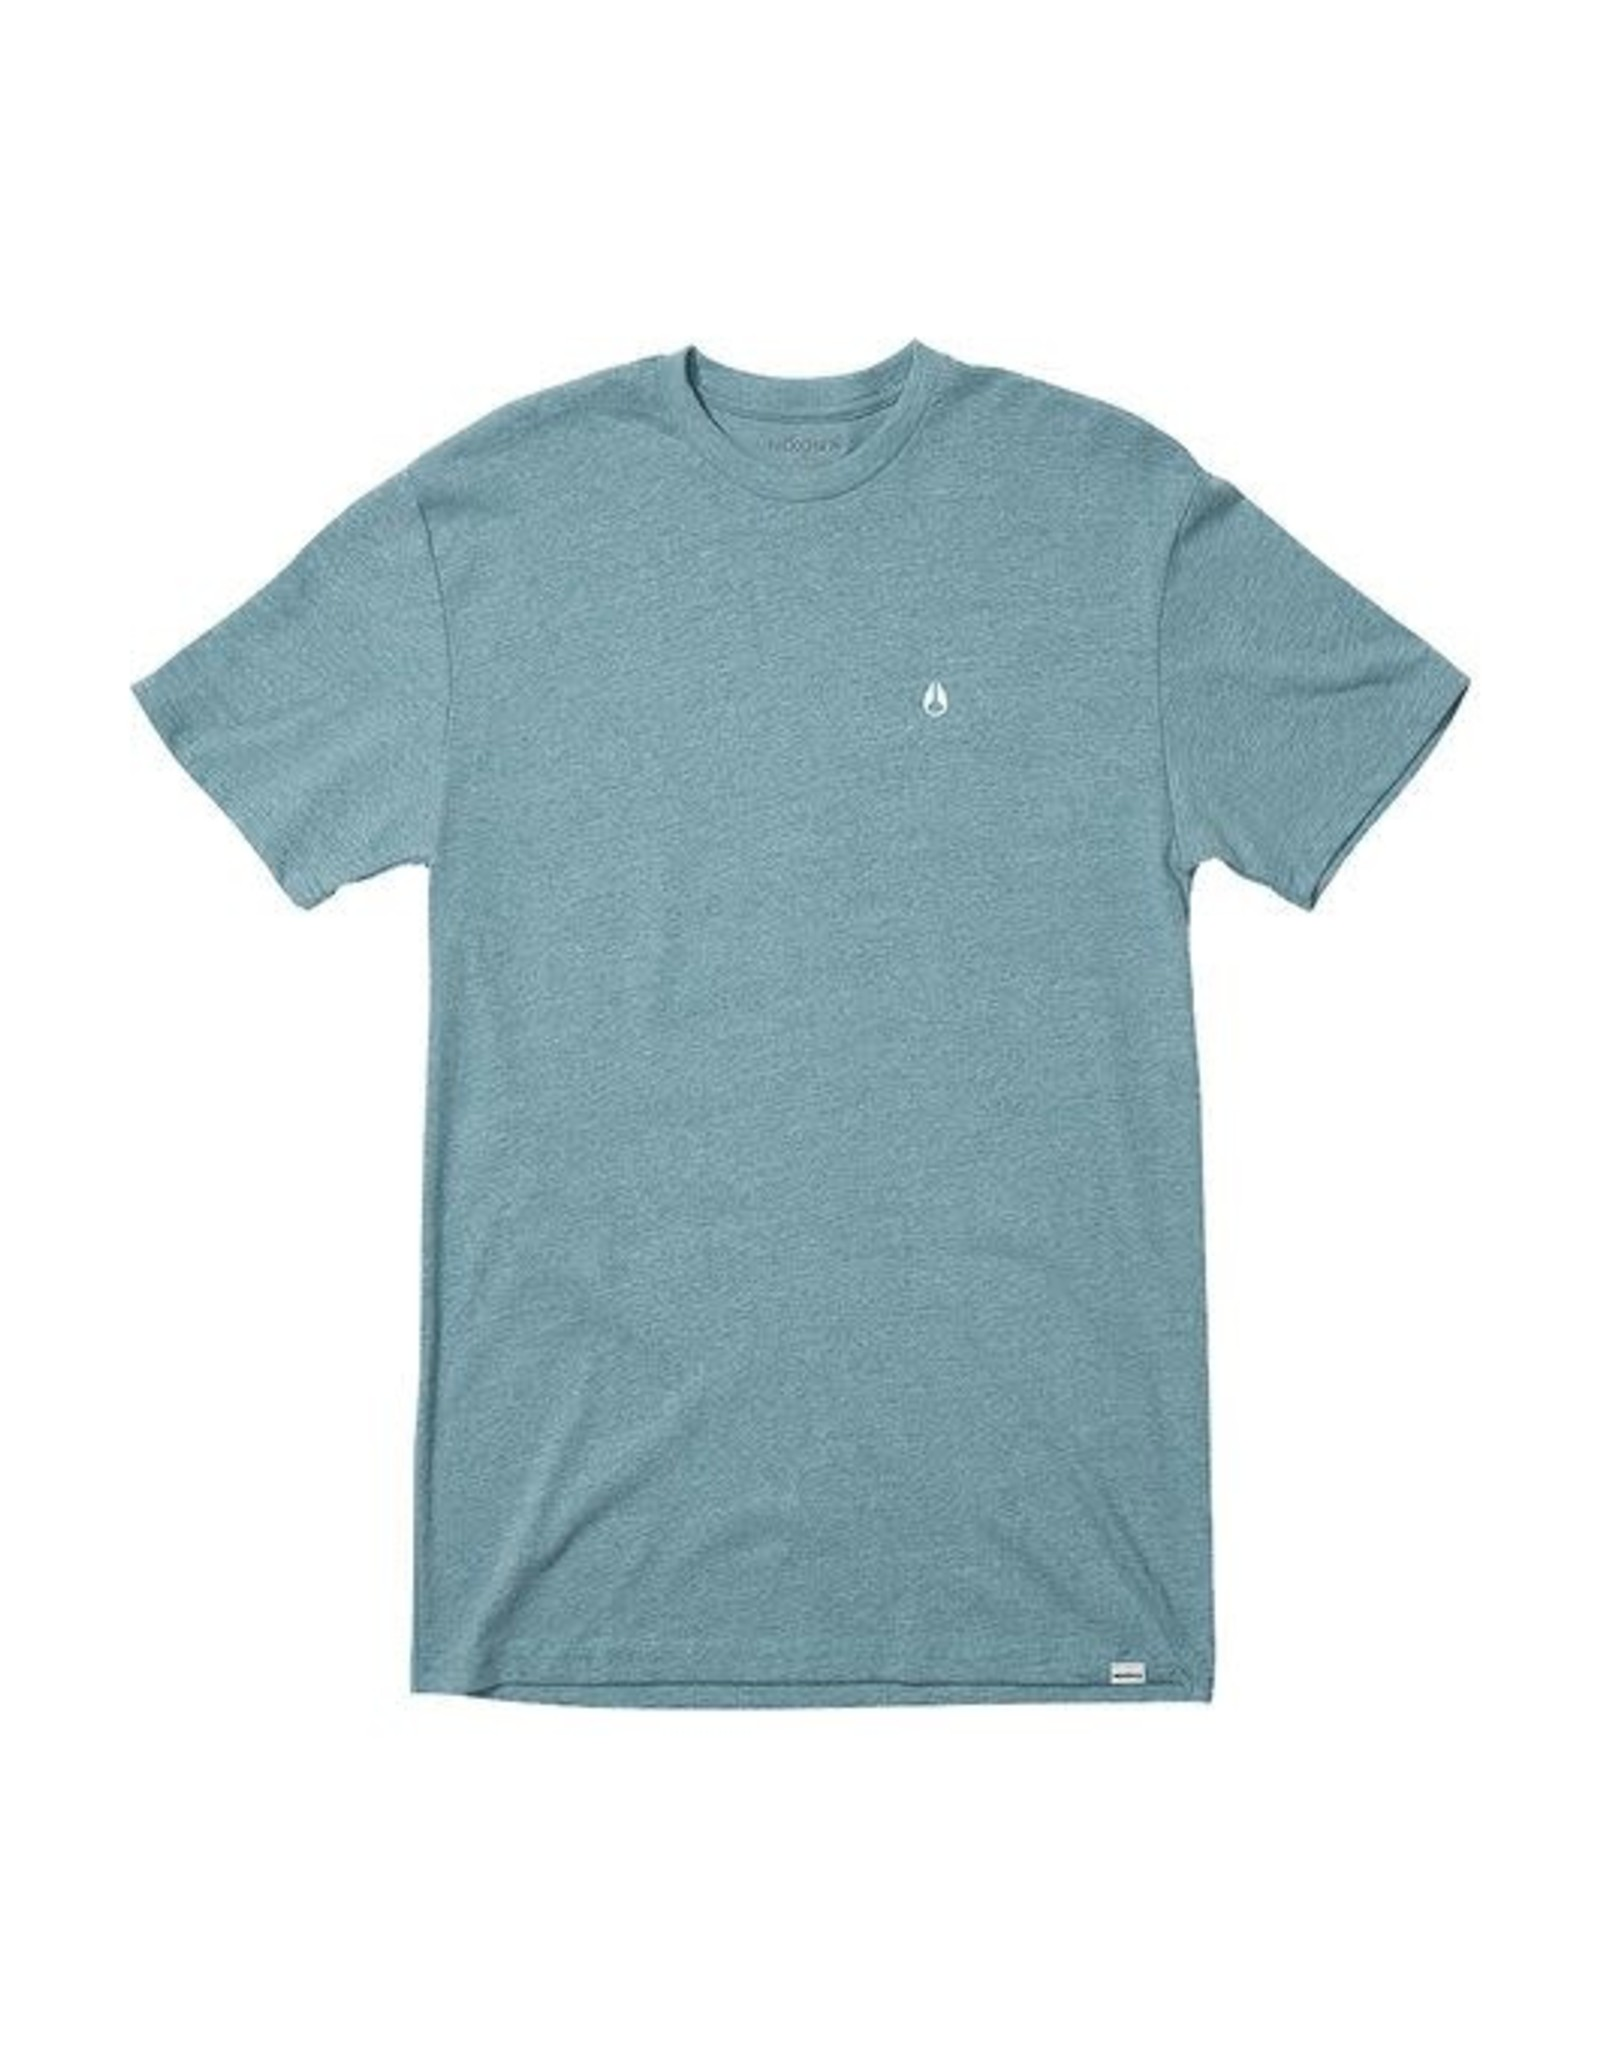 nixon Nixon - T-shirt homme sparrow heather pacific